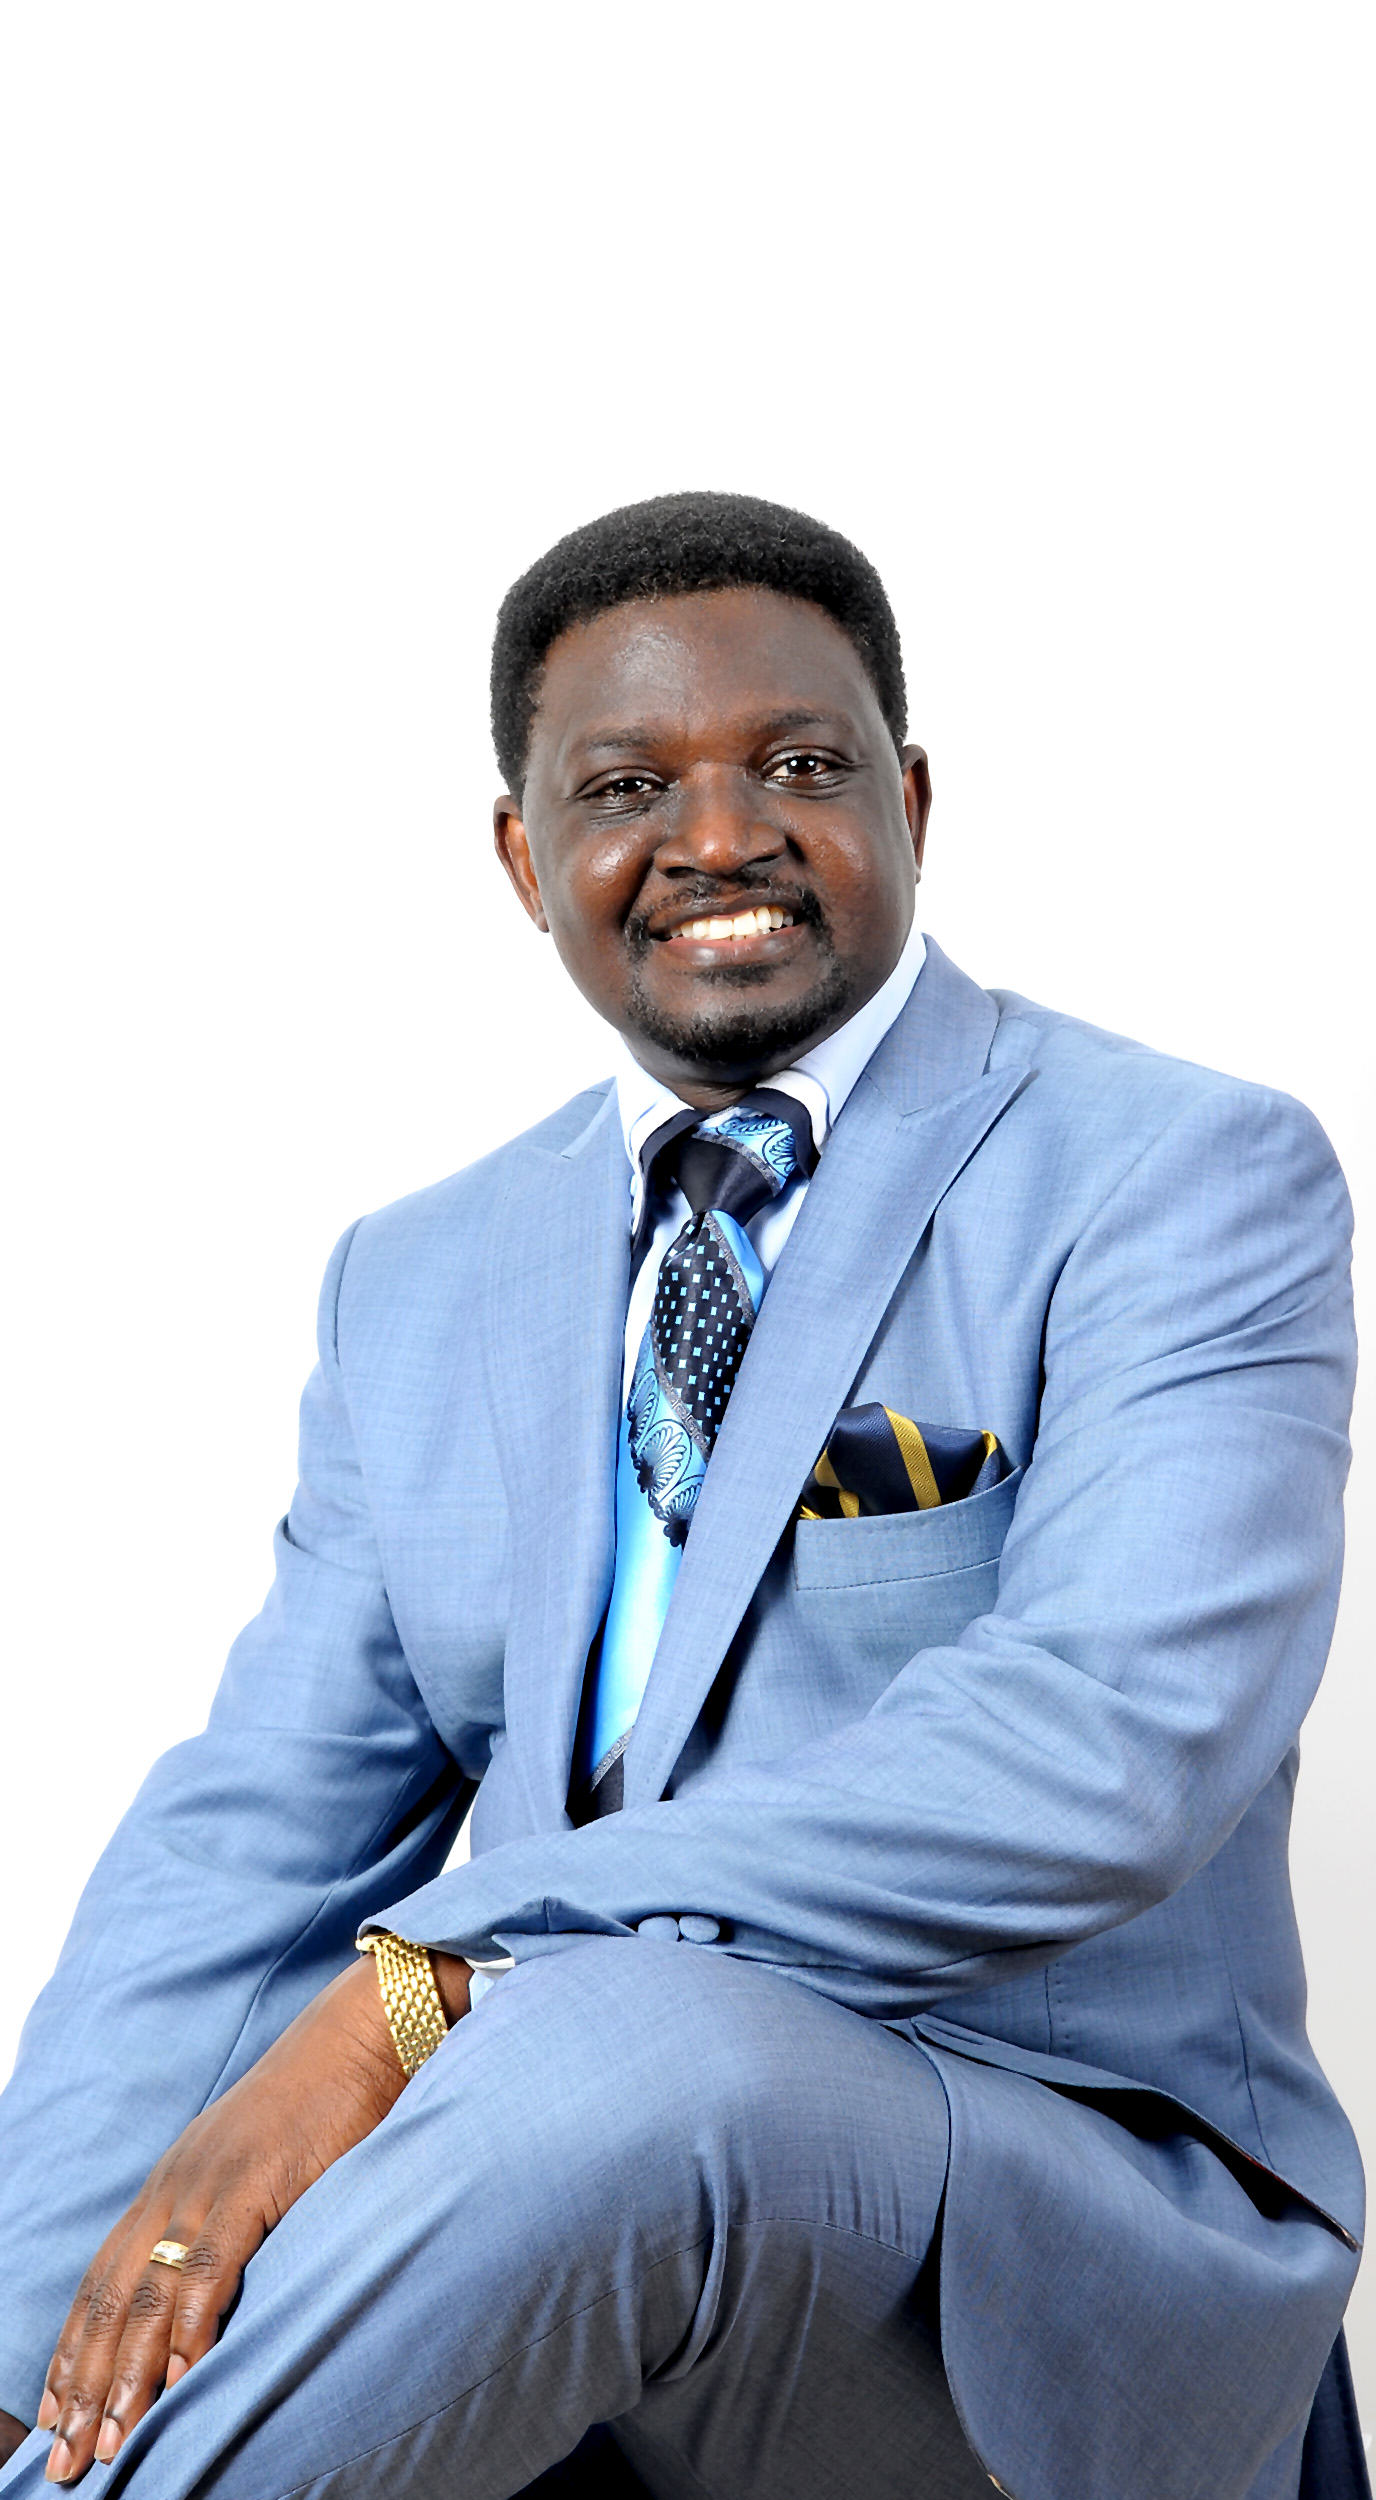 Drug addiction, womanizing and the prophetic ministry of Bishop Charles Agyinasare